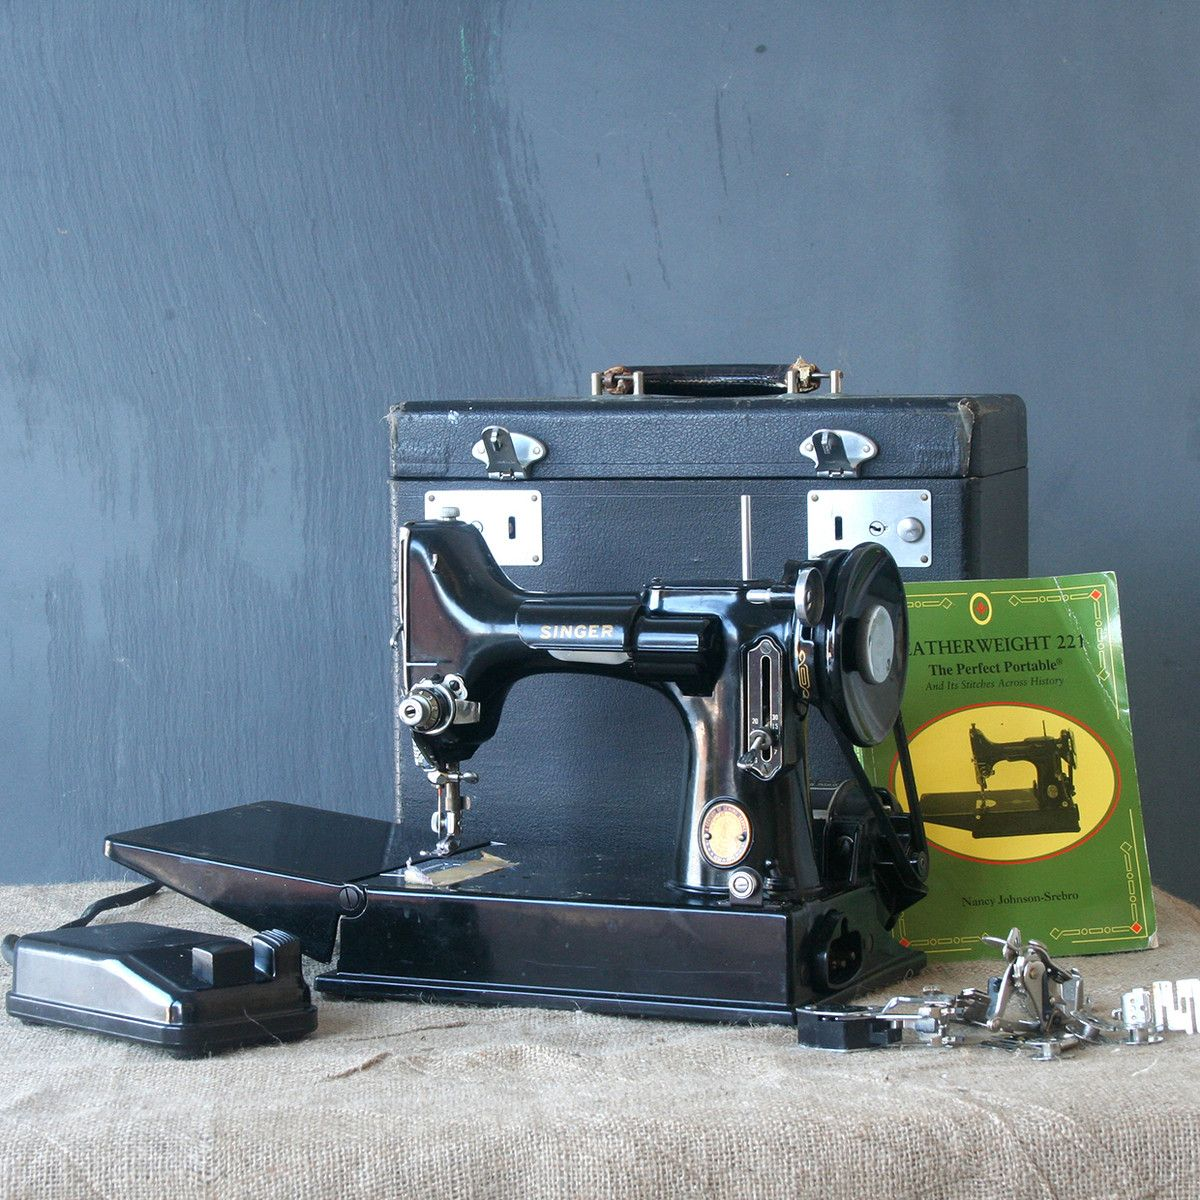 Own a Singer Featherweight.....I HAVE 2 AND A FEATHERWEIGHT TABLE TOO!!!.....DONE